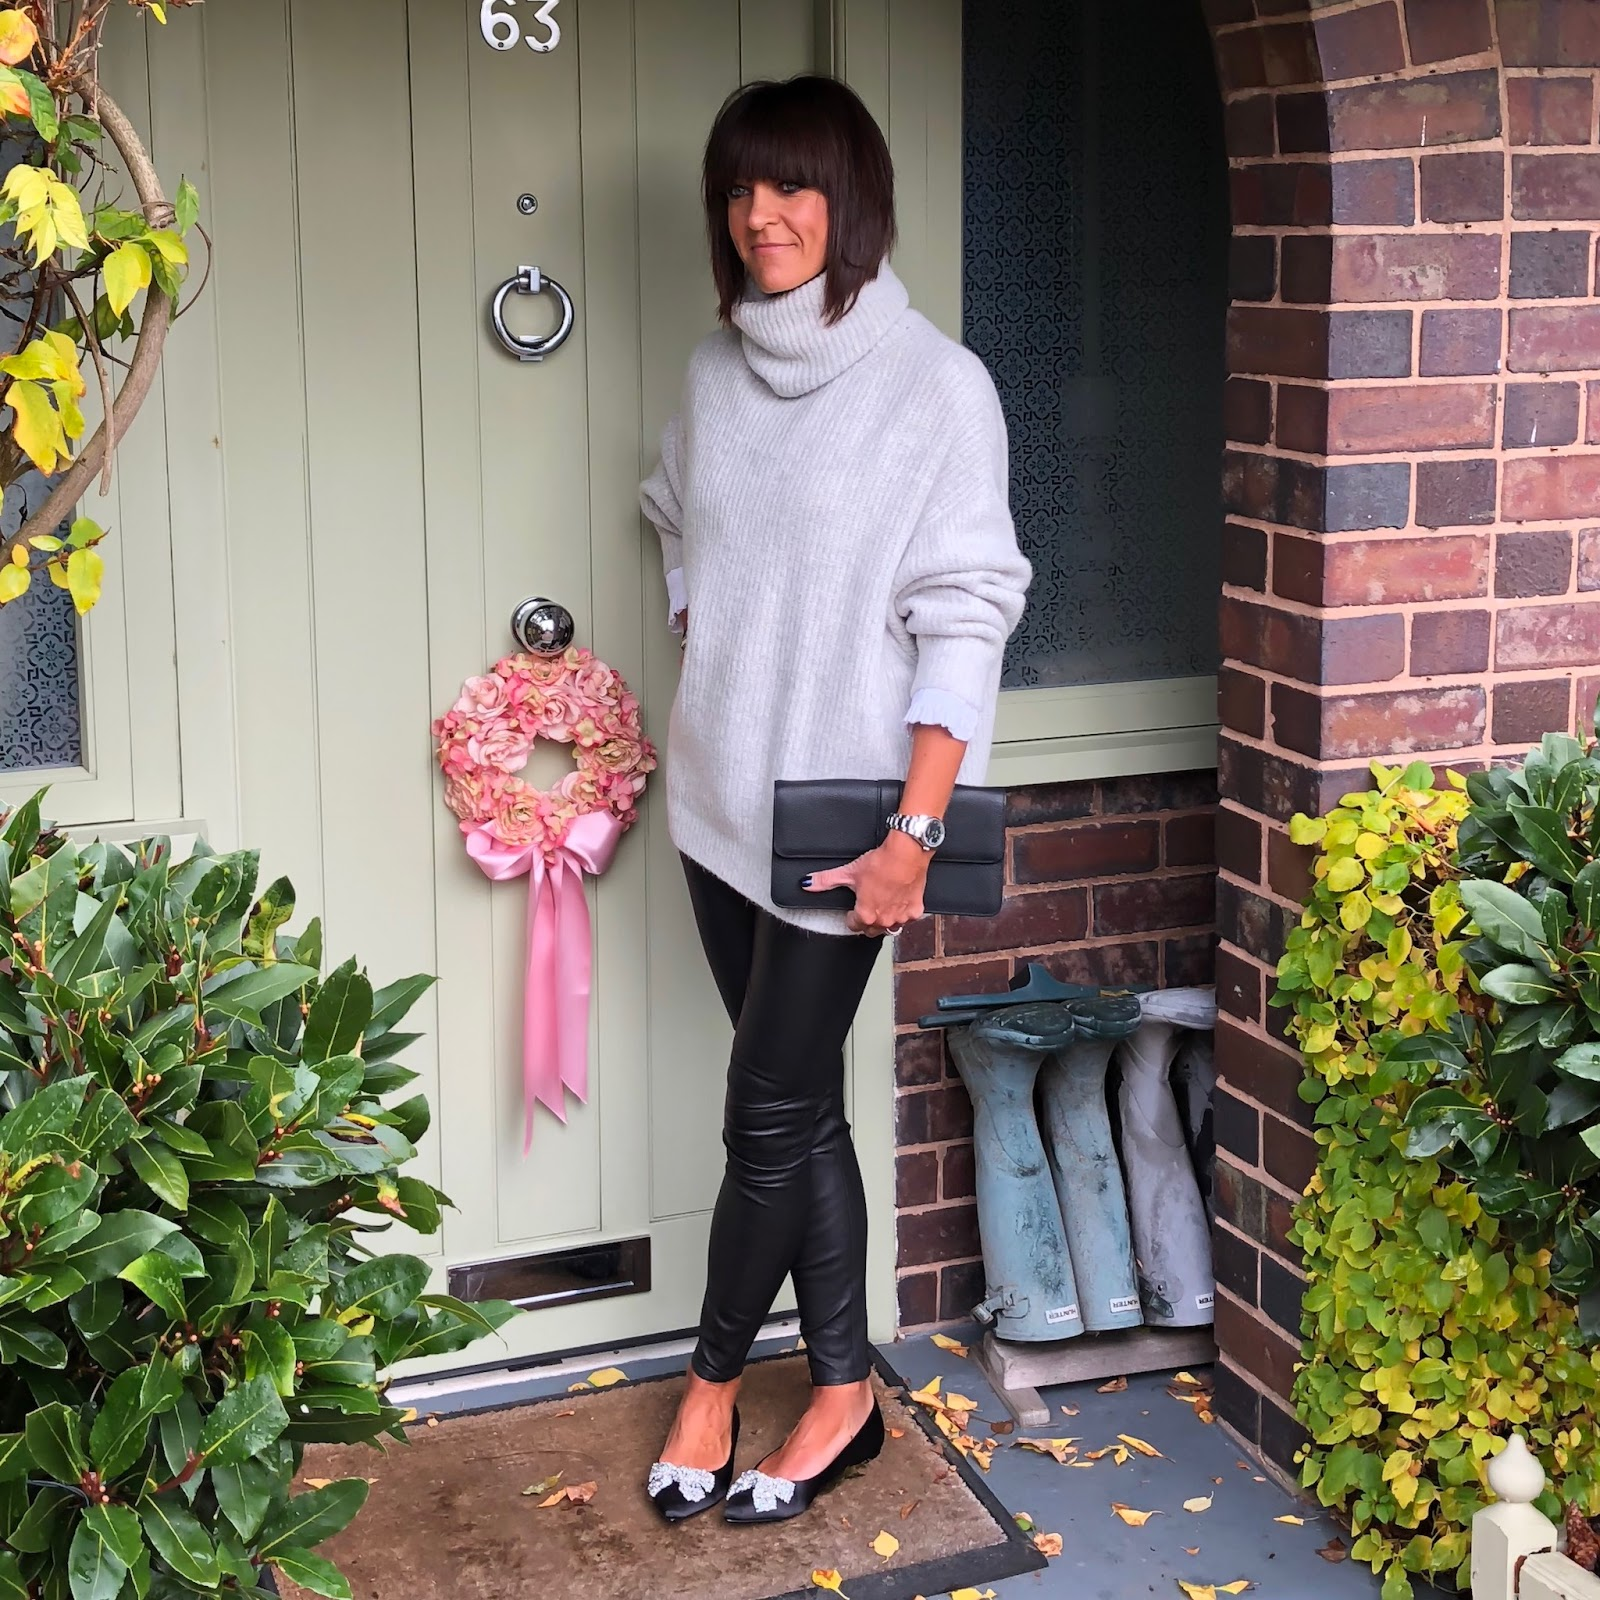 my midlife fashion, house of fraser, dune bluebelle flat pointed court shoes, zara oversized chunky knit polo neck jumper, ralph lauren lauren clutch bag, uniqlo high collar frill detail blouse, massimo dutti leather leggings